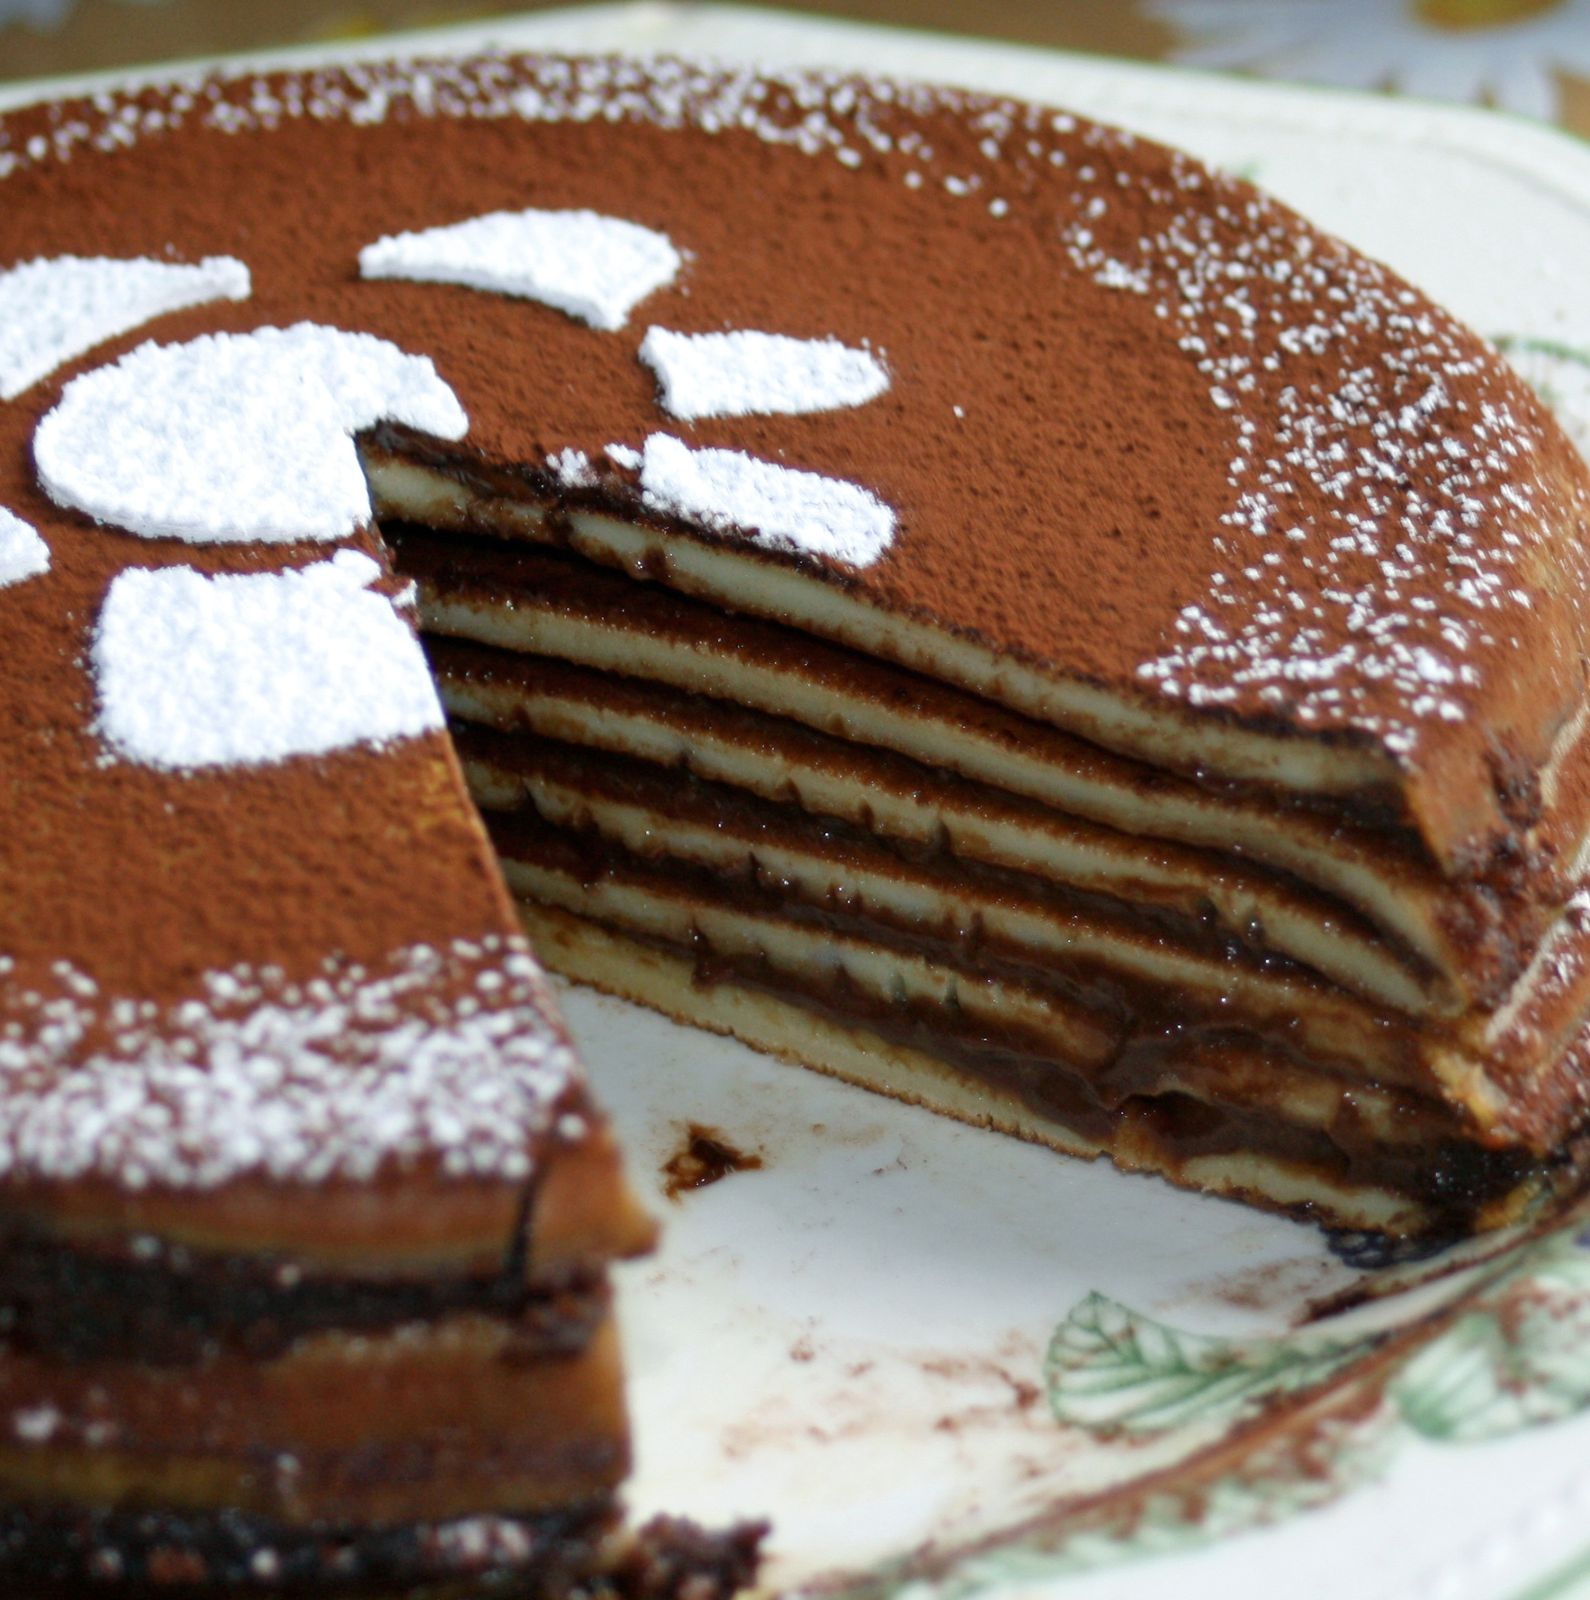 gateau-de-crepes-au-chocolat-speculoos--4-_modifie-1.JPG